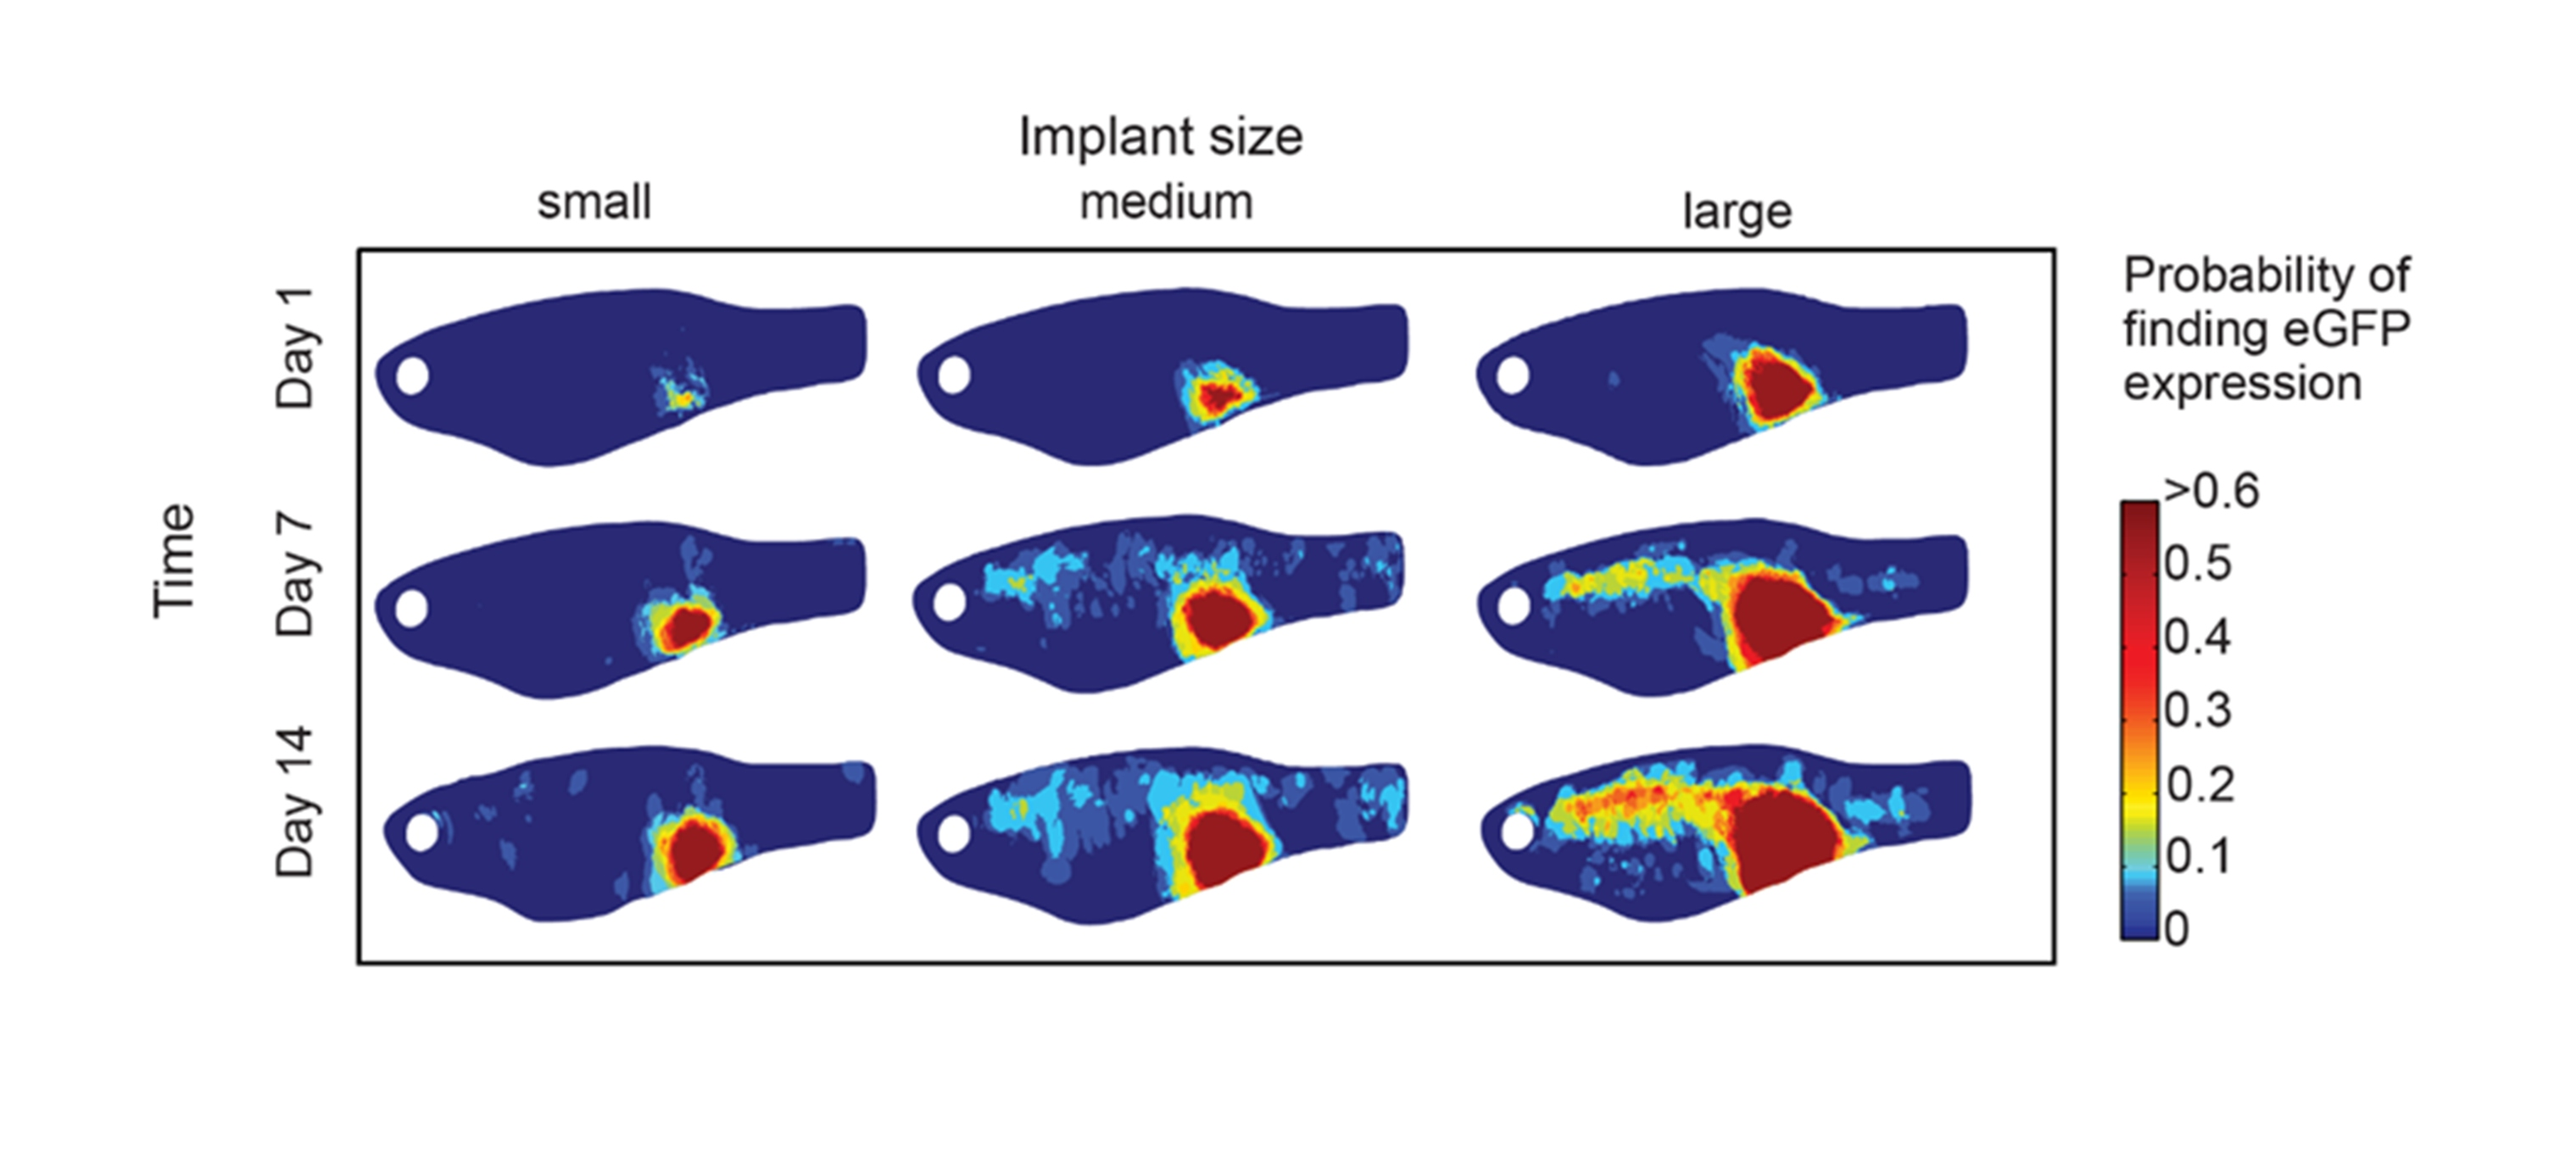 Advances in zebrafish imaging